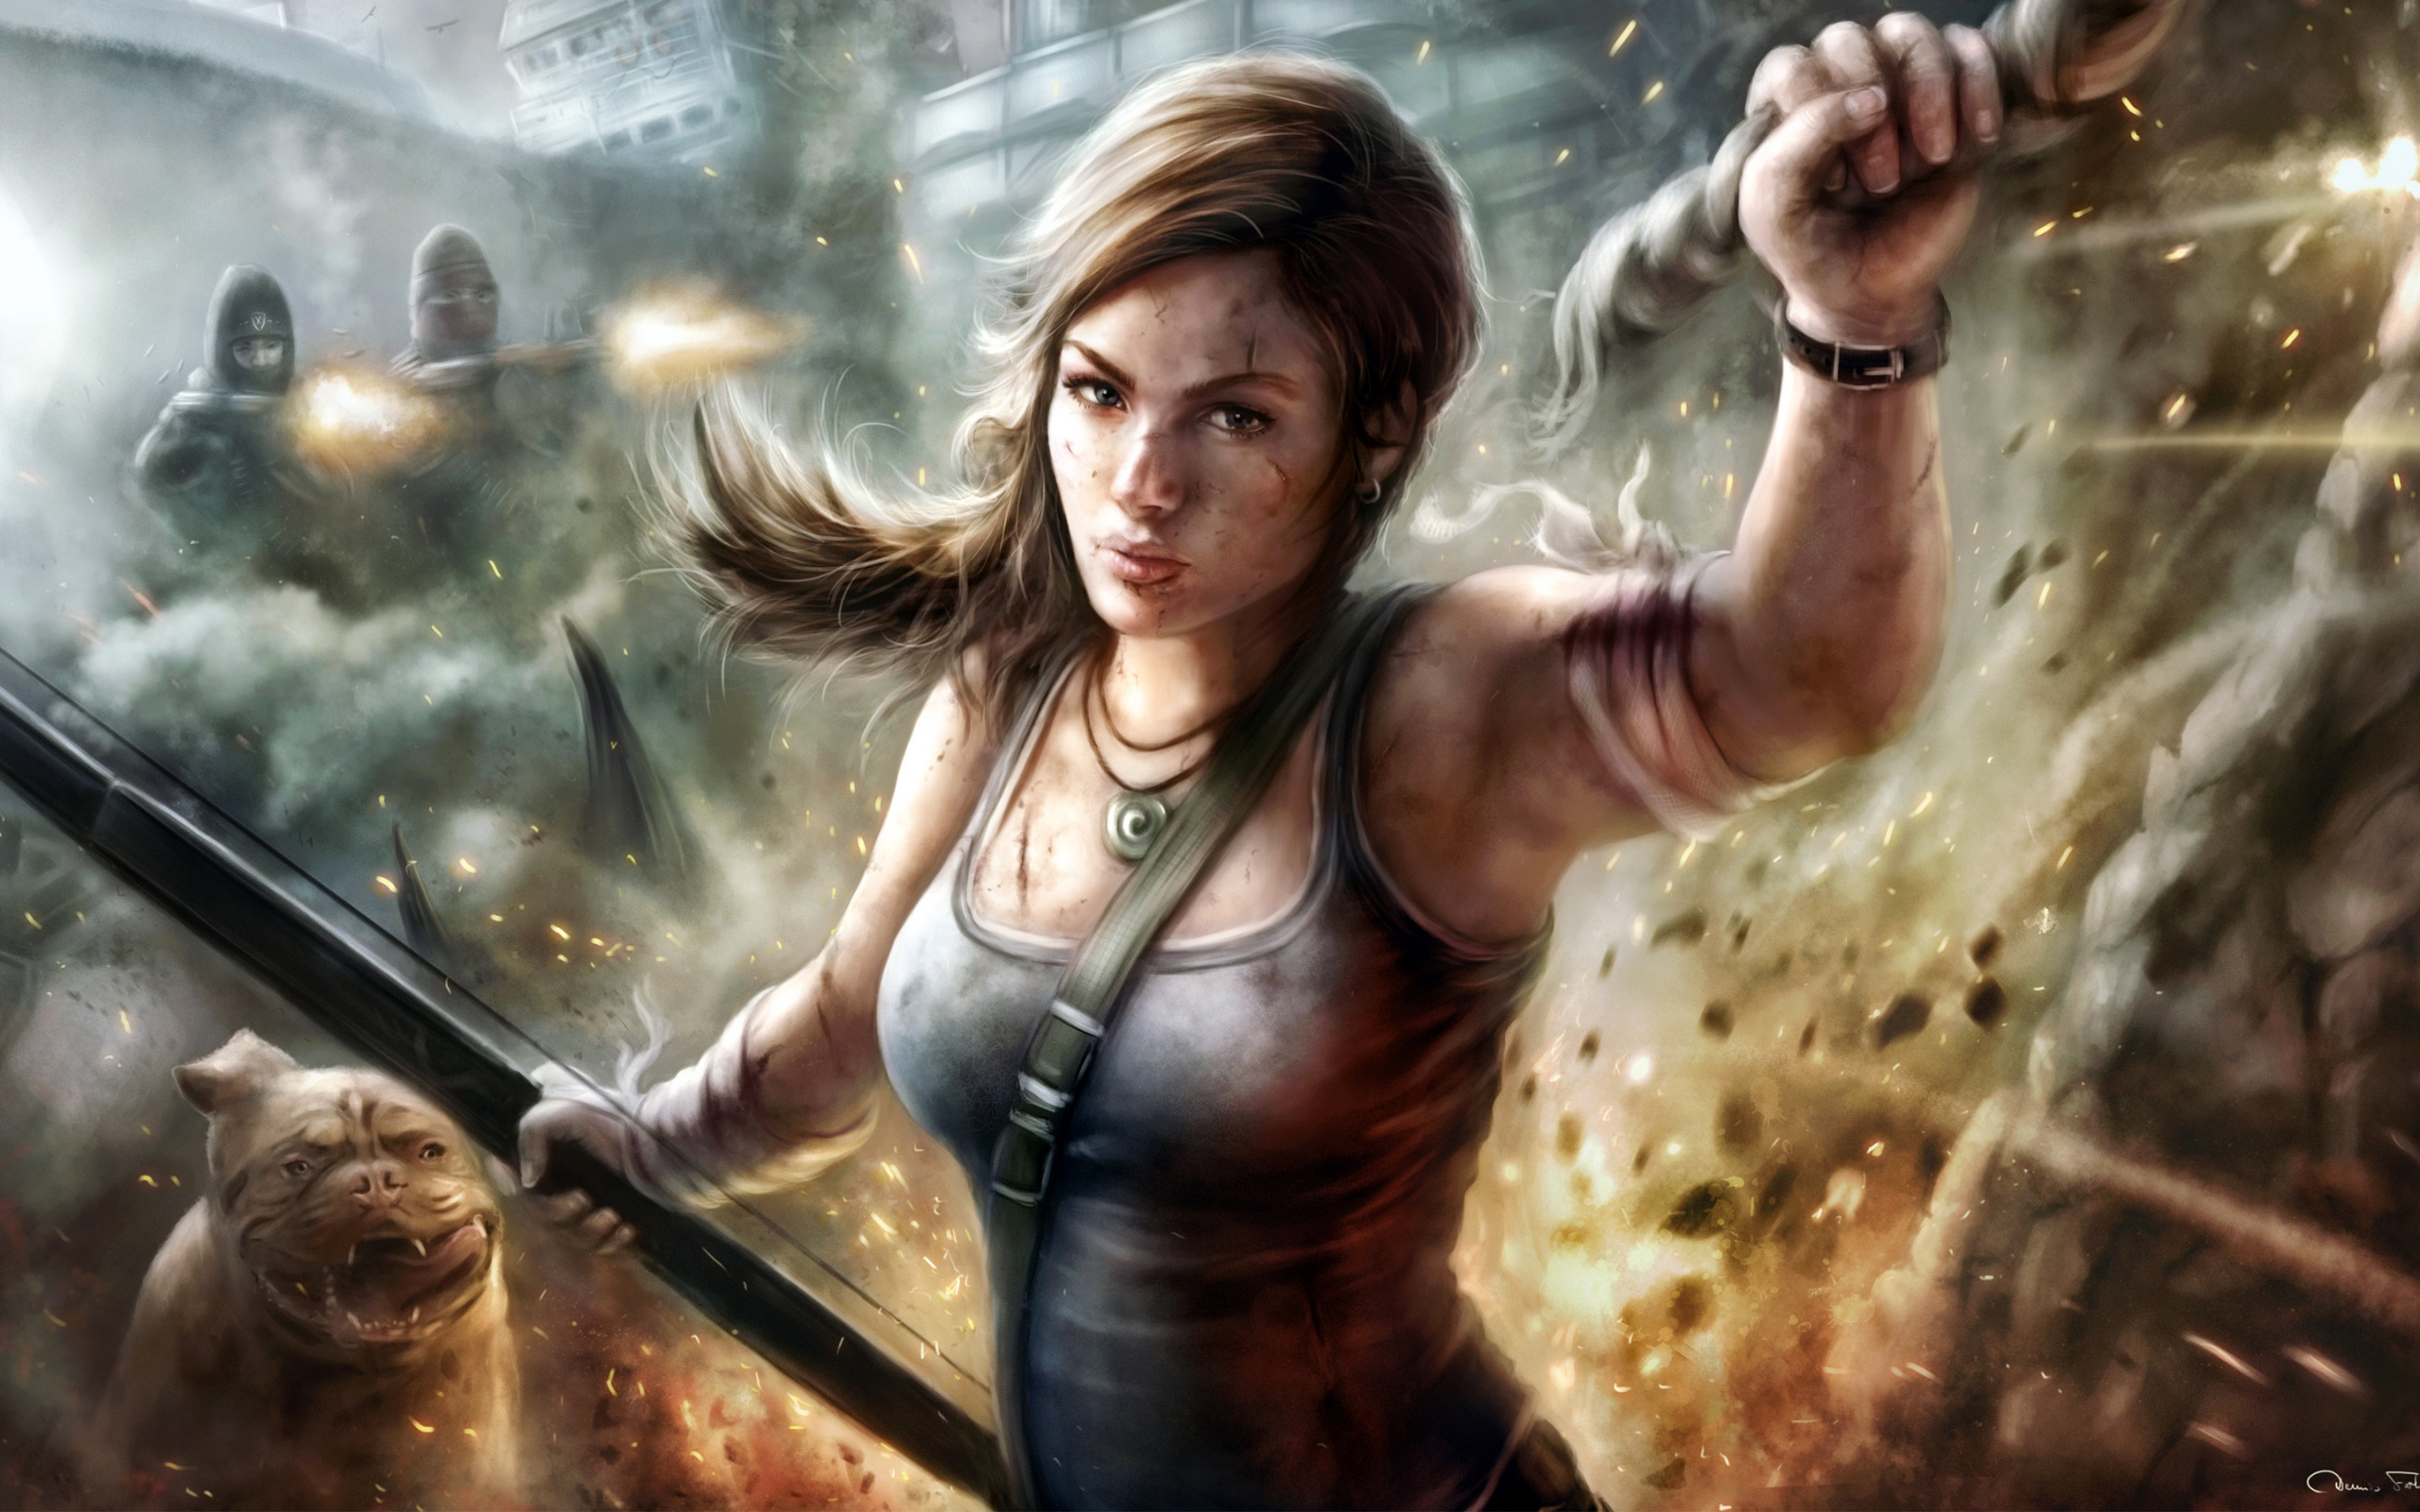 lady lara croft wallpapers in jpg format for free download